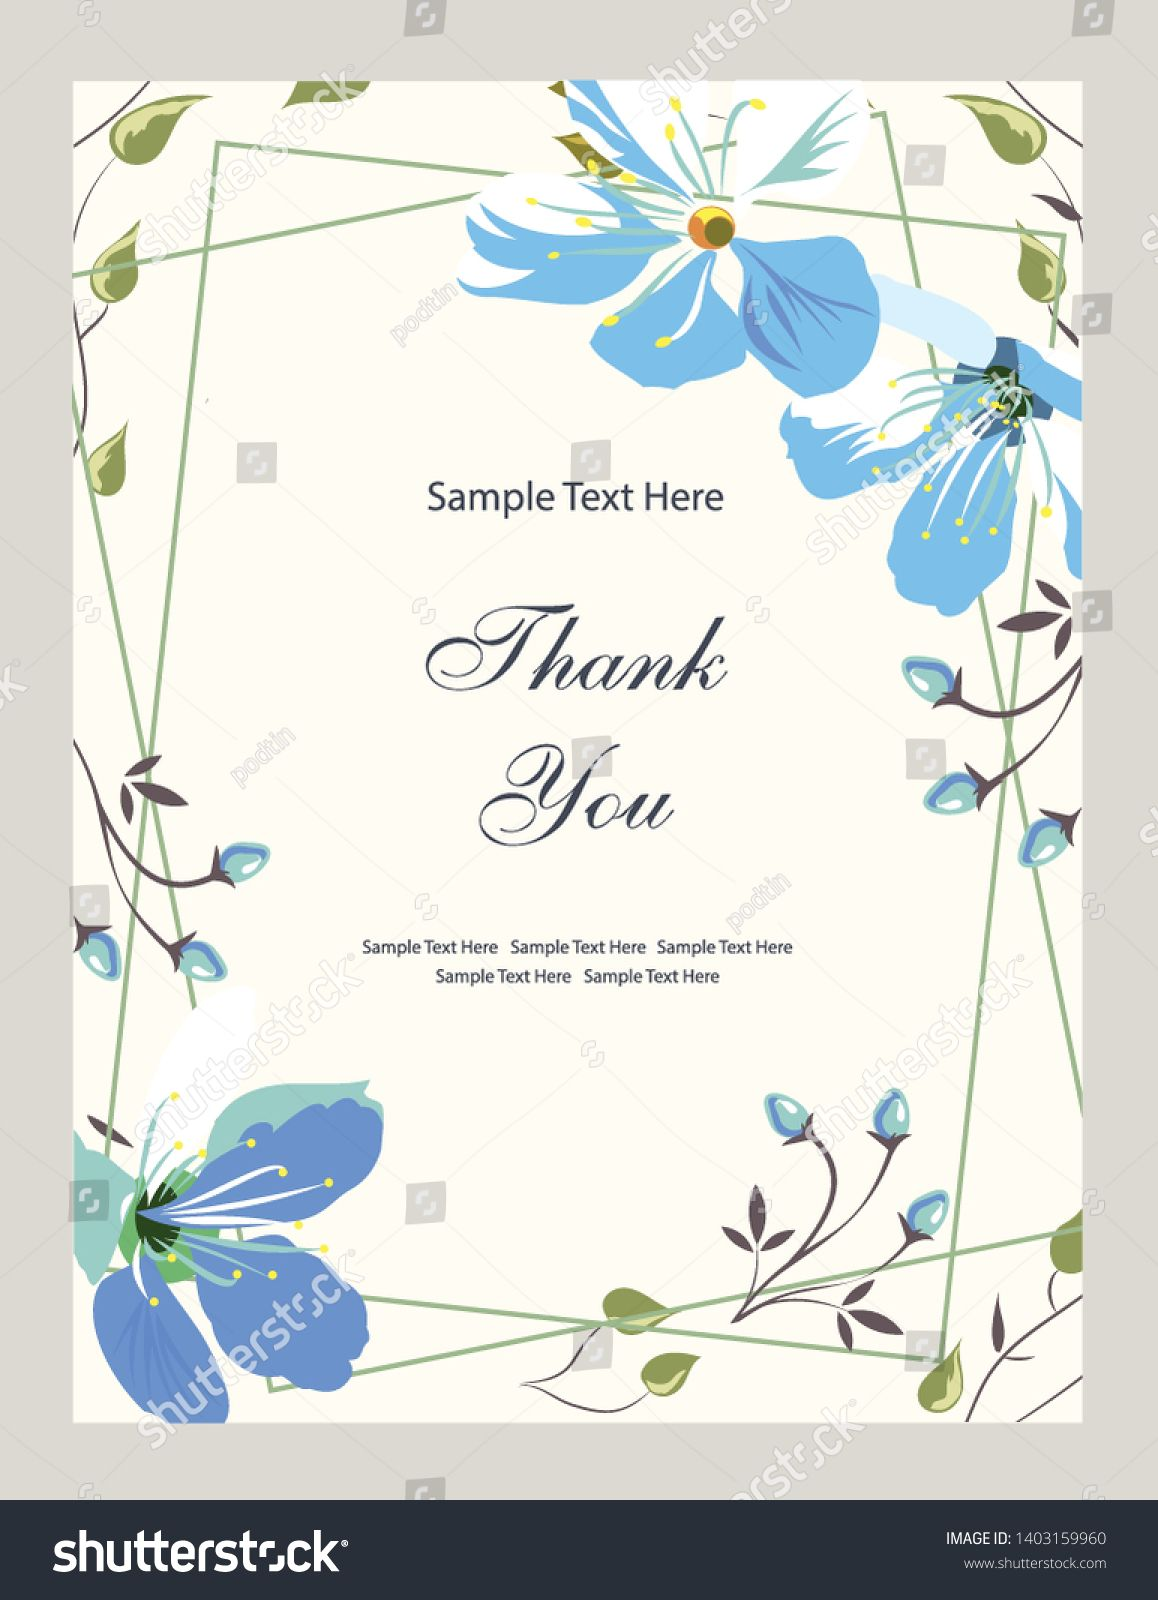 Flower Vector Card Template Thank You Blank Wedding Invitation Greeting Card Banner Flowers Leafs Vintage De Blank Wedding Invitations Cards Templates